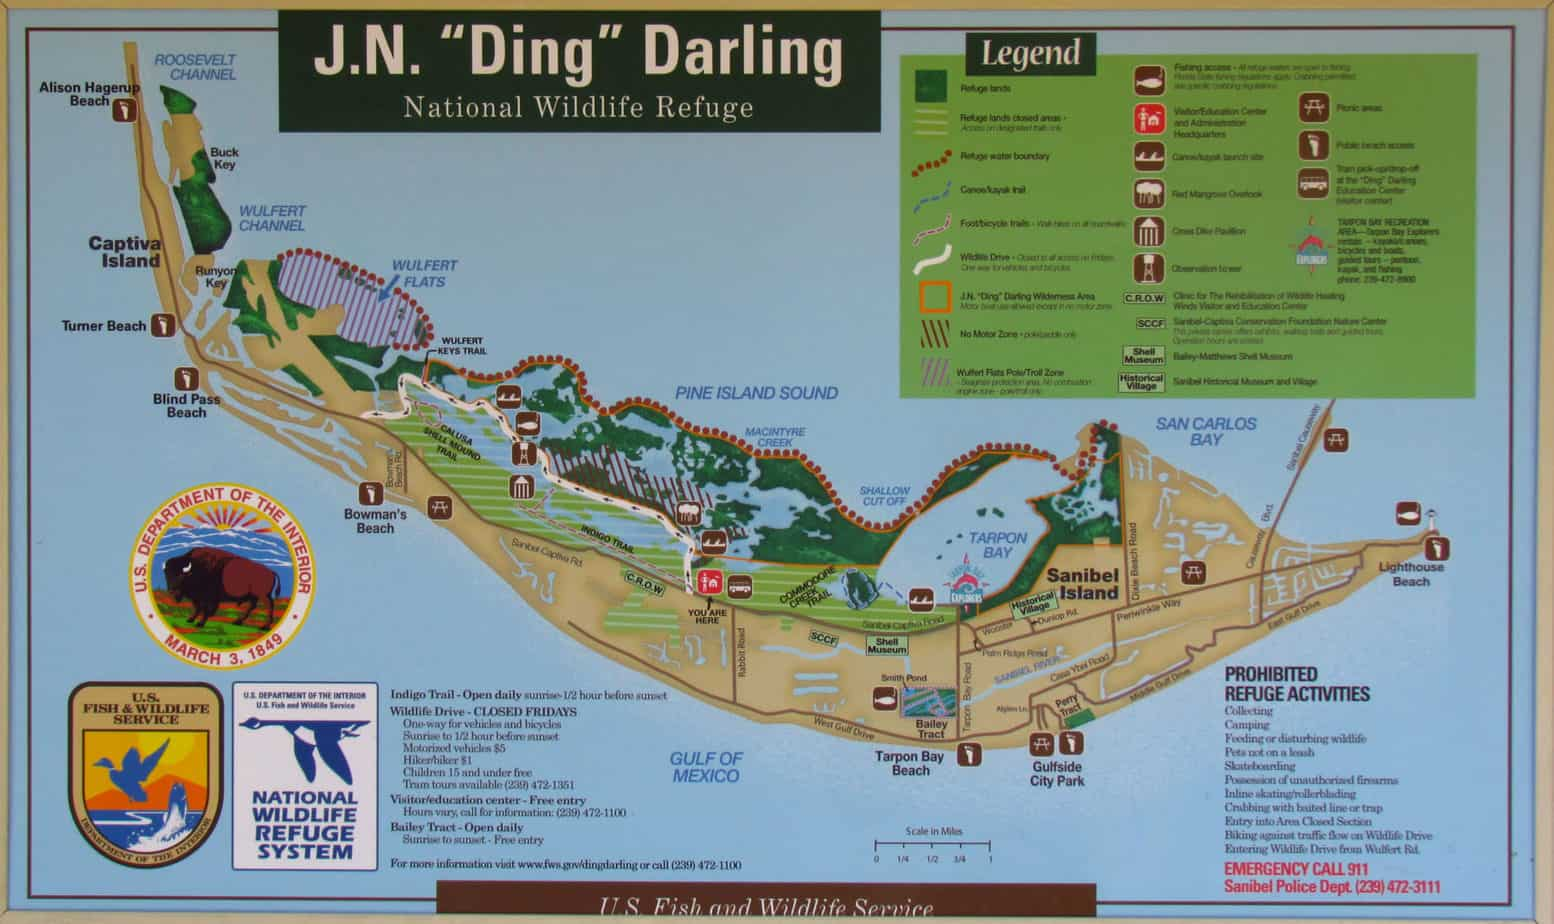 sanibel in fall 'ding' darling days oct    florida  - map of 'ding' darling national wildlife refuge on sanibel island